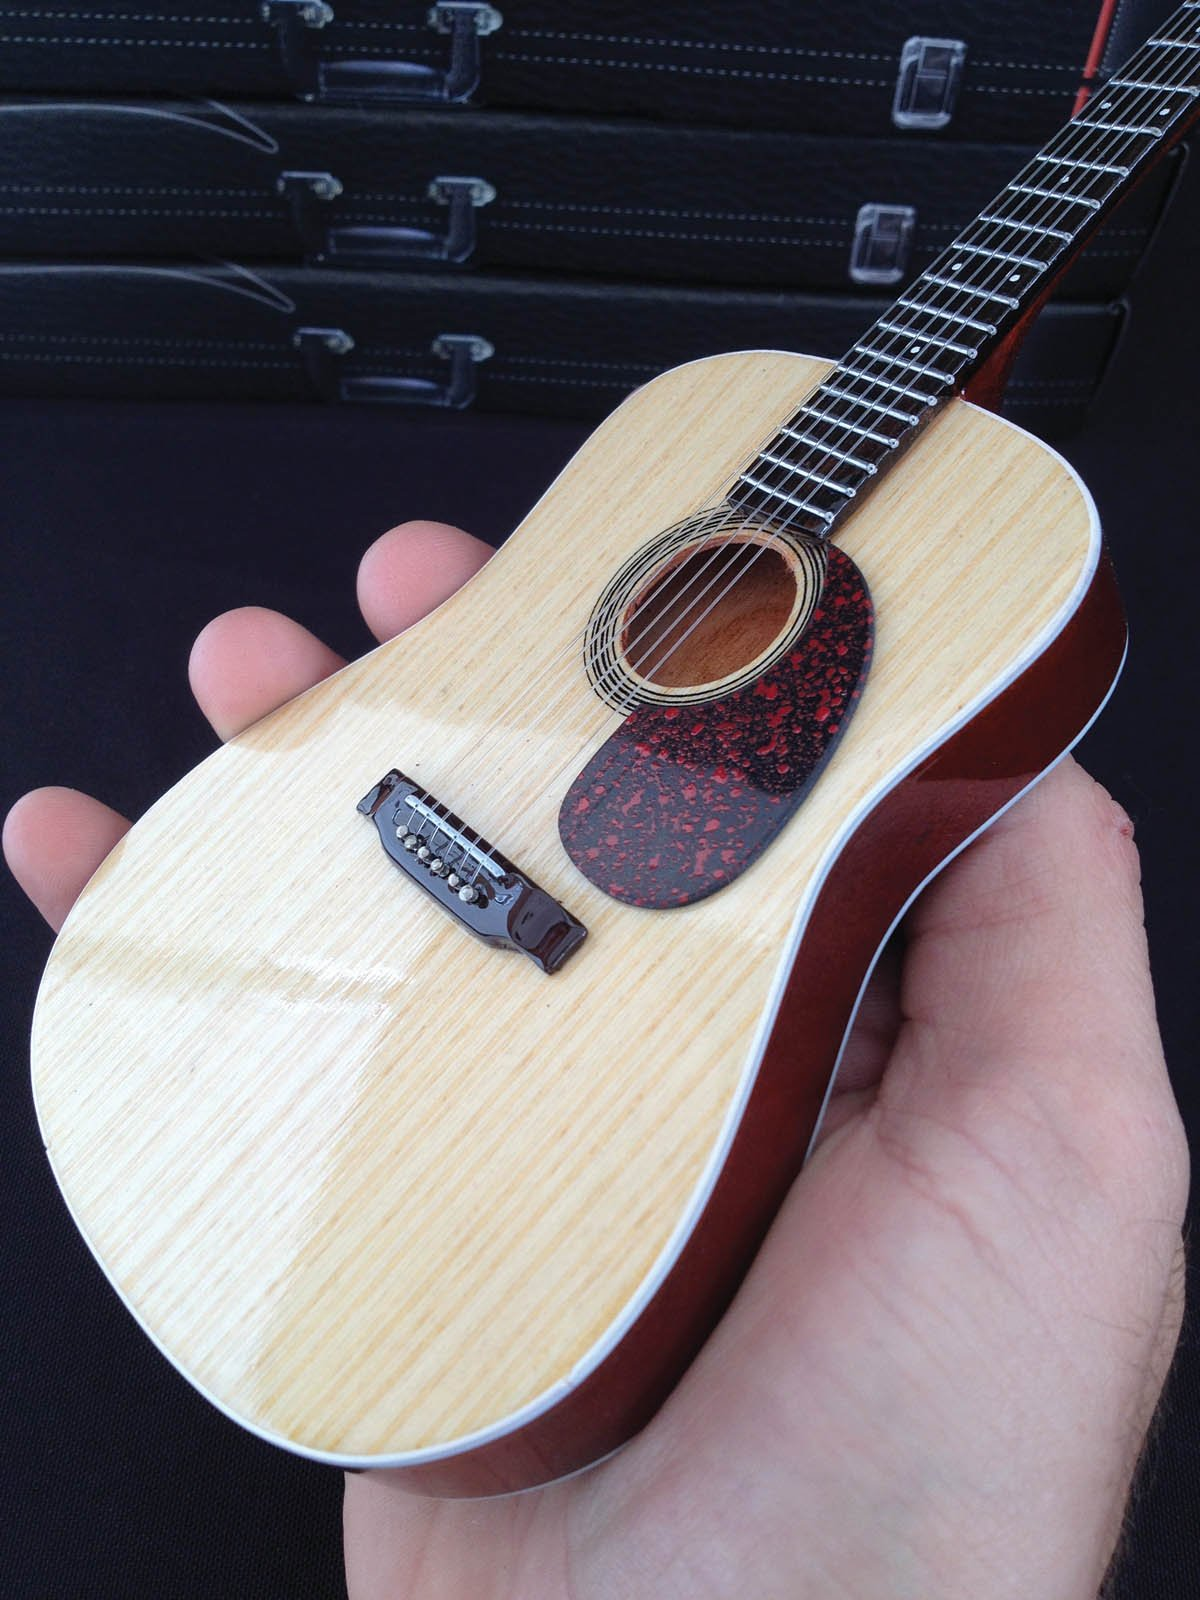 Axe Heaven AC-001 10-Inch Classic Natural Finish Acoustic Miniature Guitar Replica Collectible, Rosewood Finish Back by AXE HEAVEN